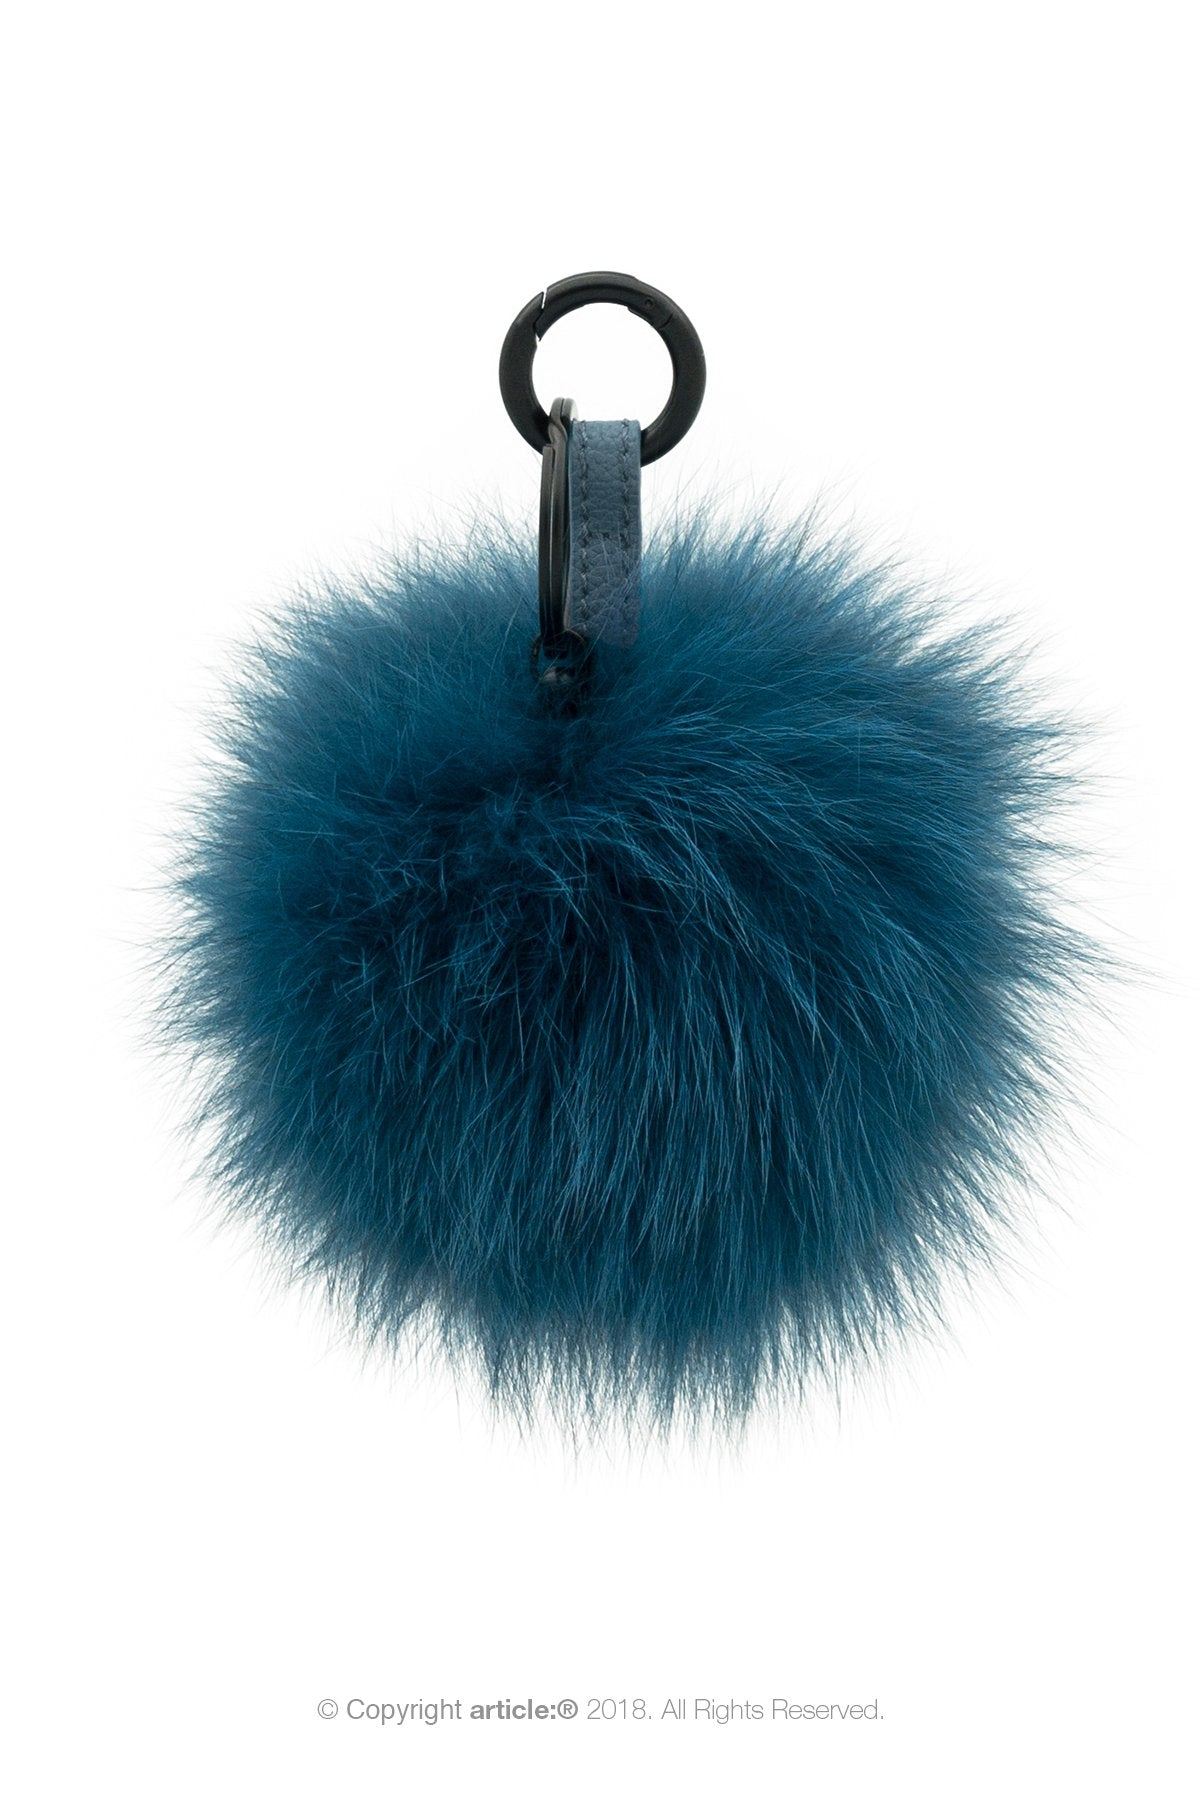 article: #400 Bag Charm / Keyring Pom Pom - Prussian